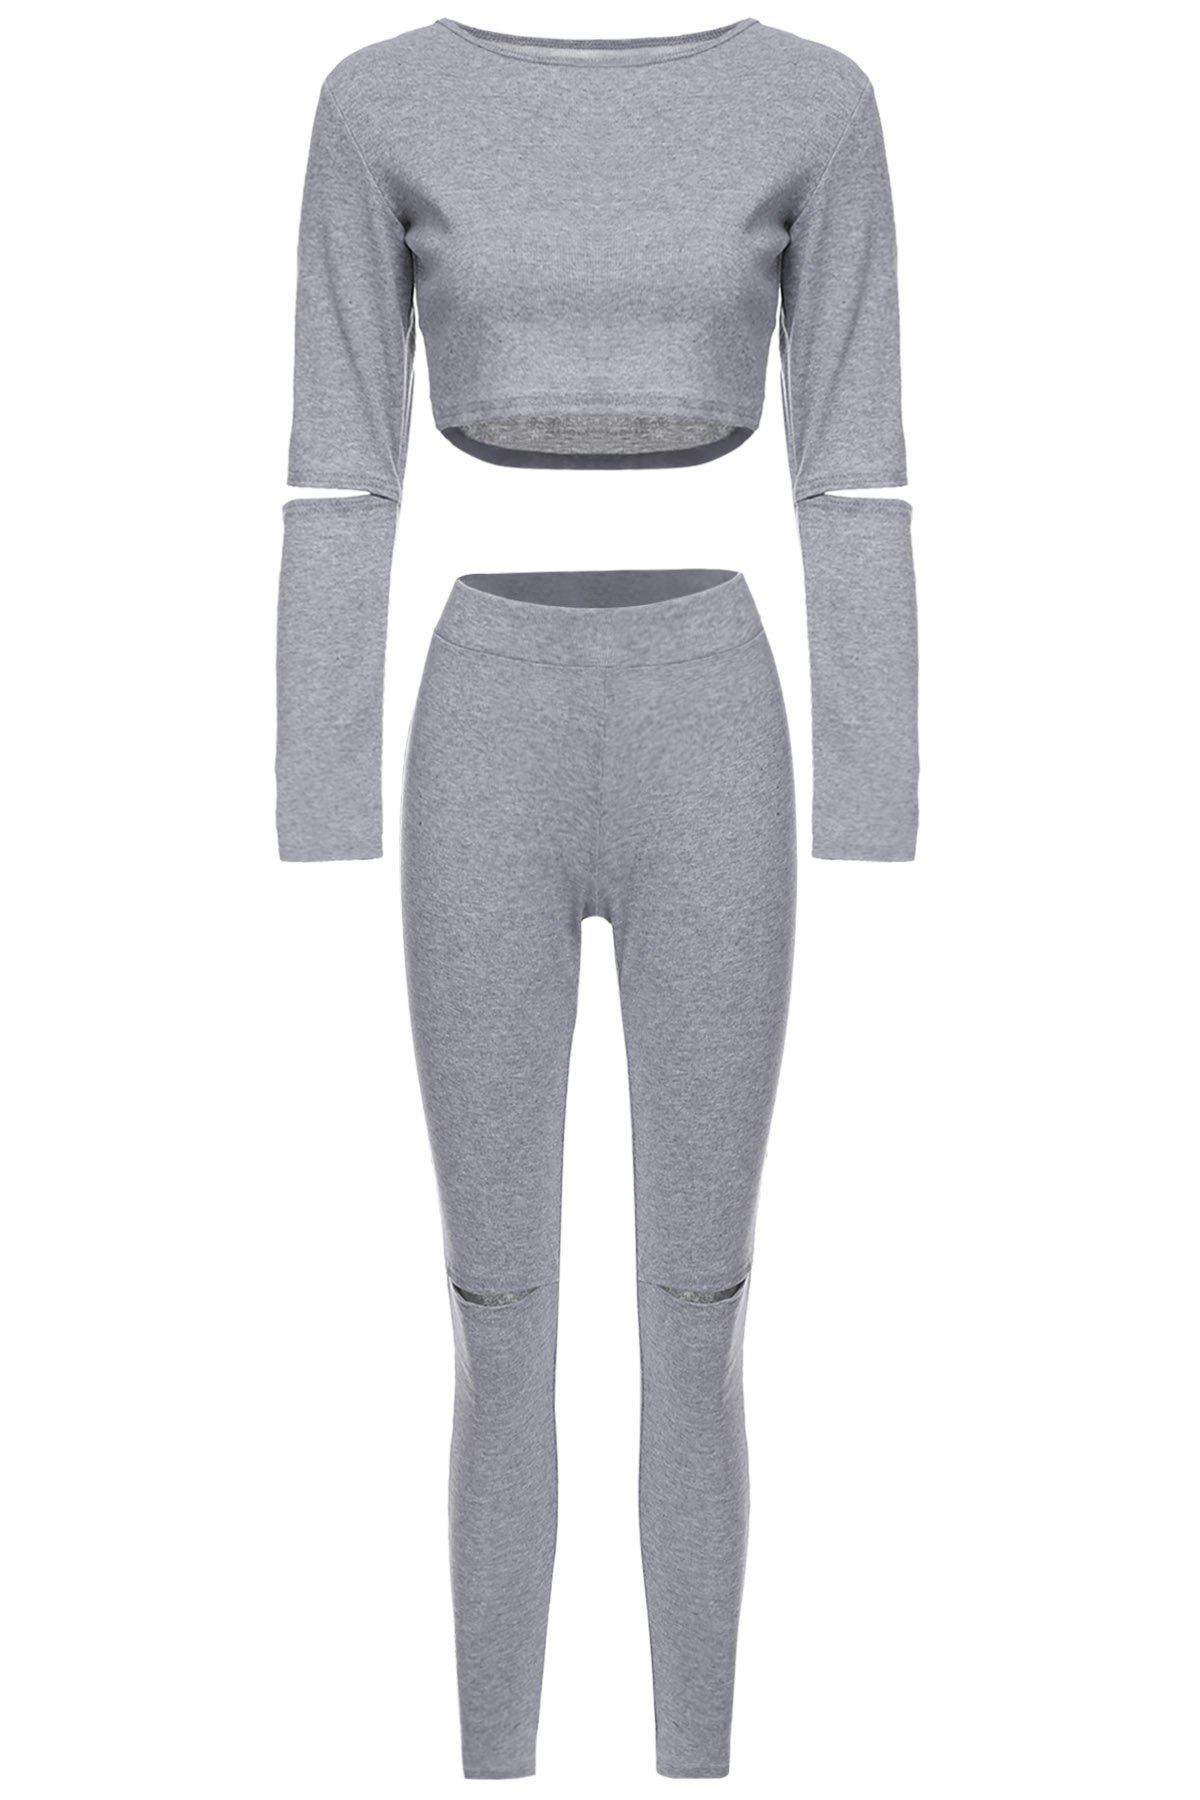 Stylish Long Sleeve Scoop Neck Solid Color Hollow Out Crop Top + Skinny Pants Women's Twinset - GRAY M